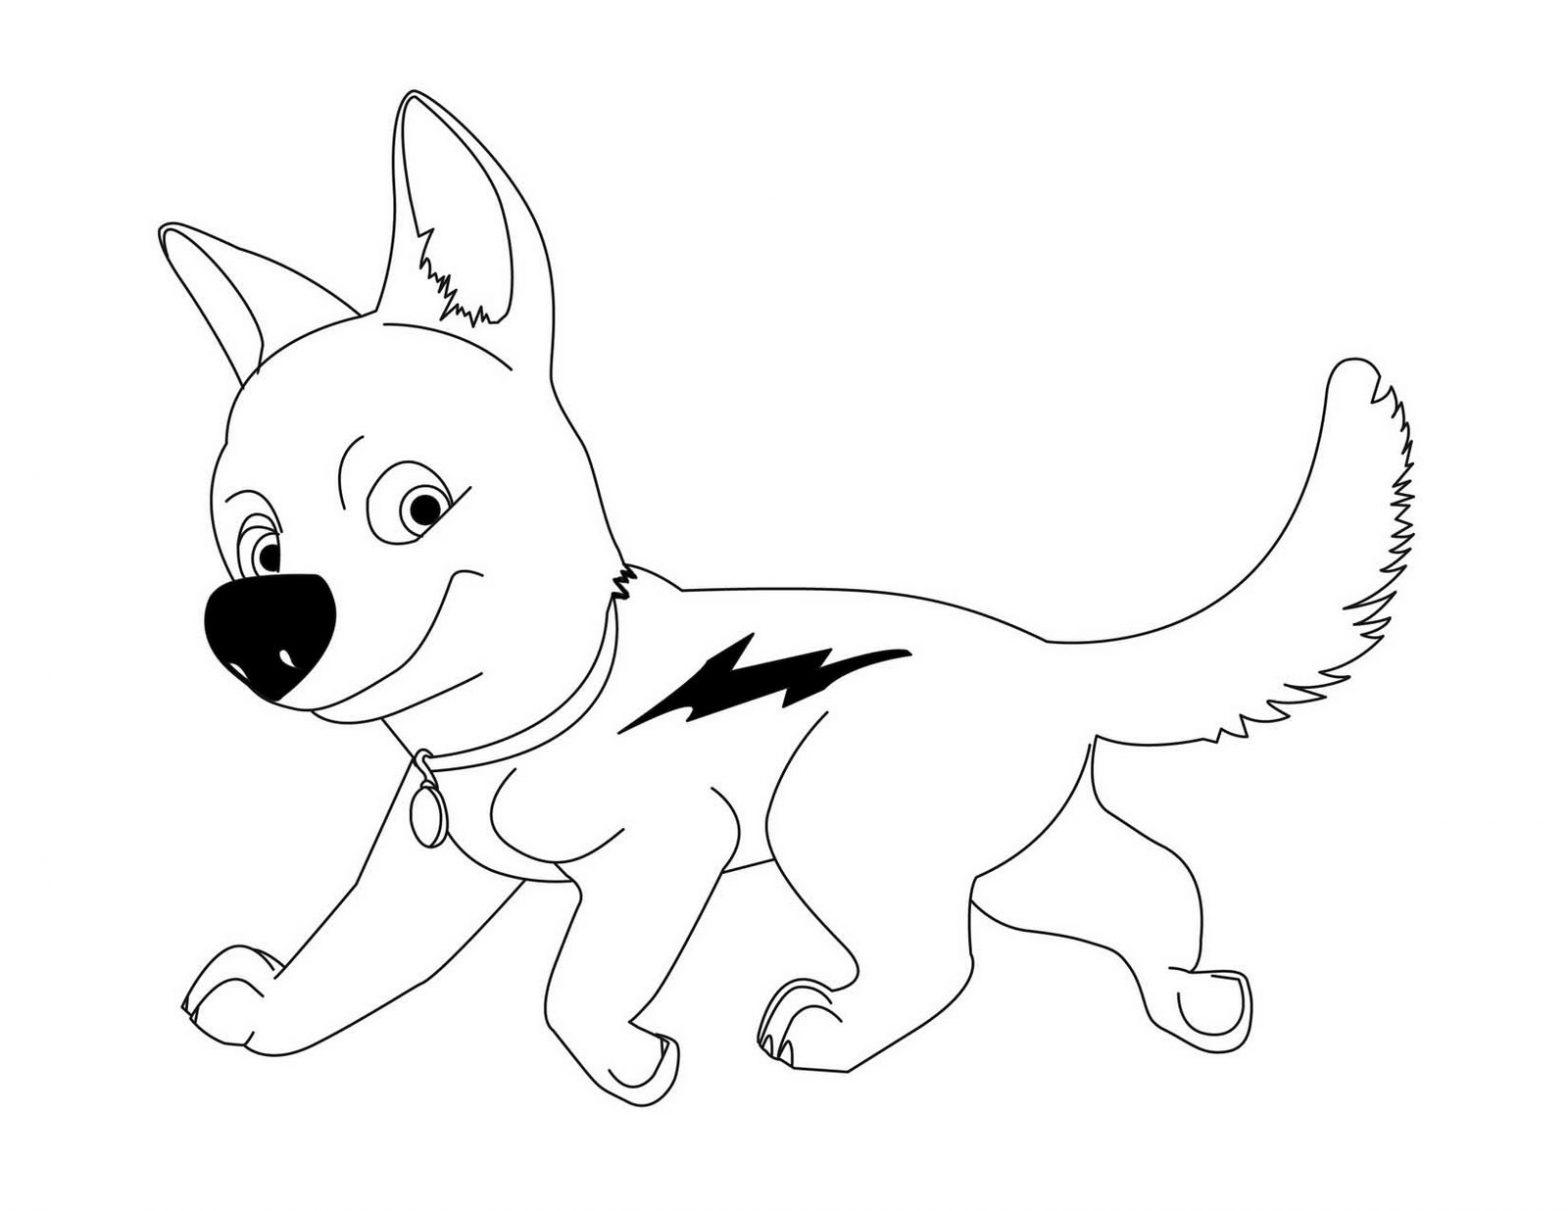 23 Bolt Coloring Pages Images | FREE COLORING PAGES - Part 3